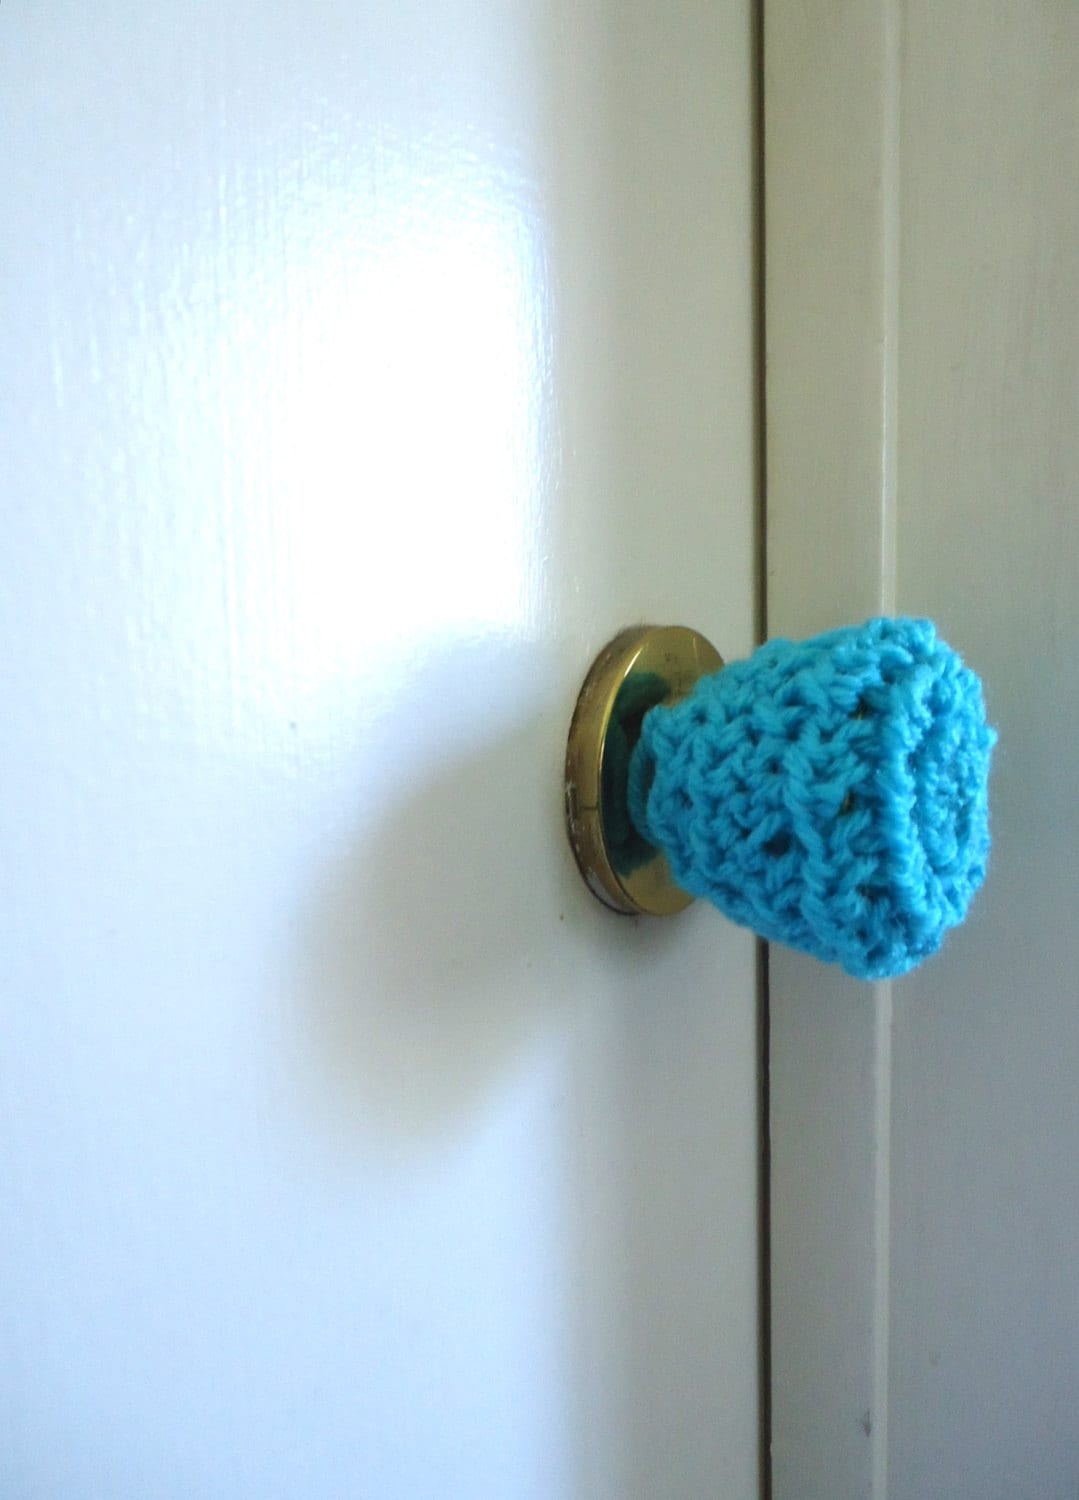 3 crochet door knob cover child safety cover by keishaskreativity. Black Bedroom Furniture Sets. Home Design Ideas